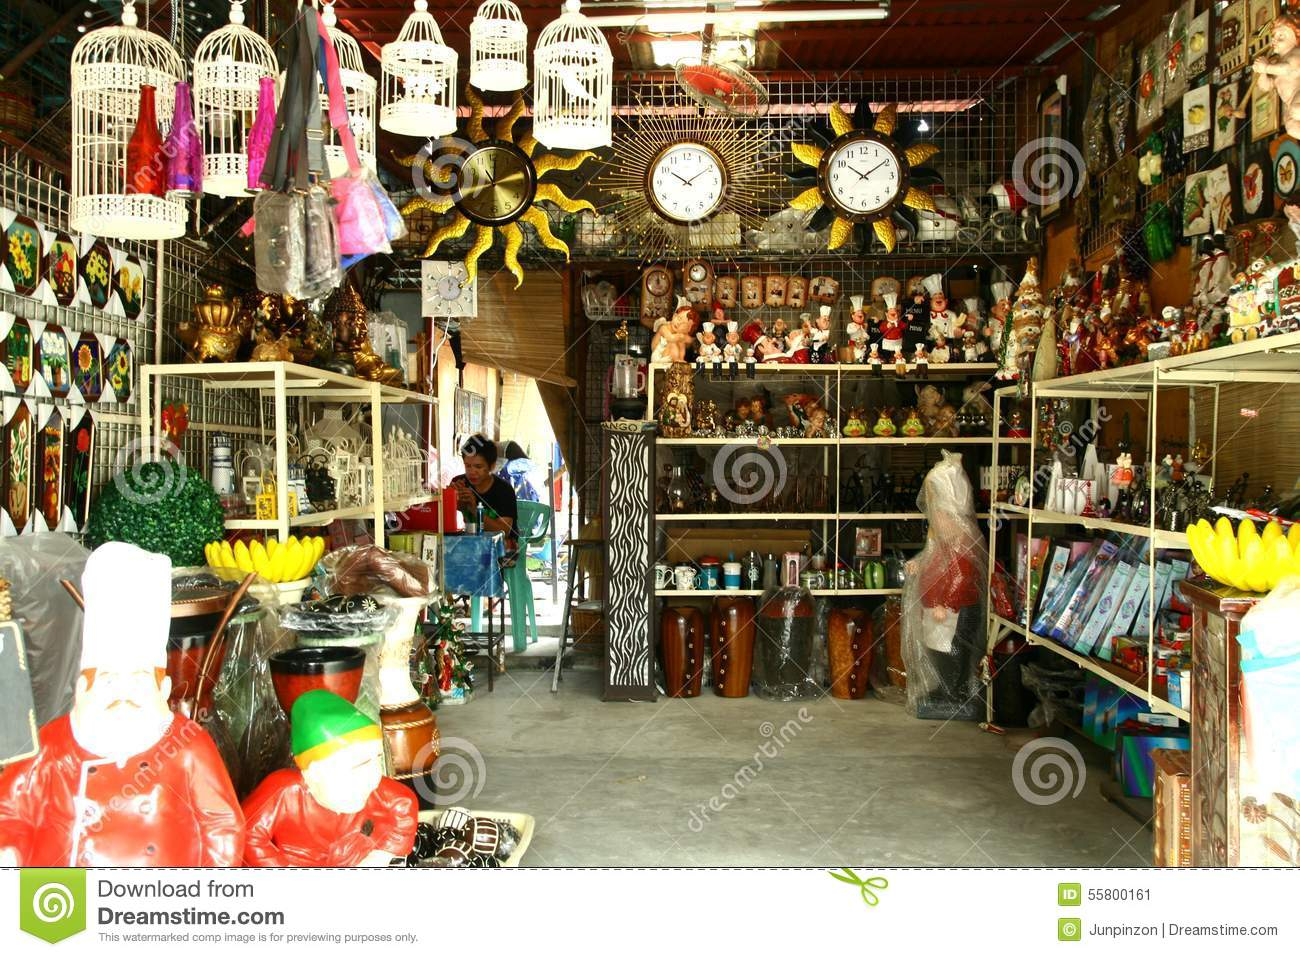 Flea Market Stores In Dapitan Arcade In Manila Philippines Selling Houseware And Home Decor